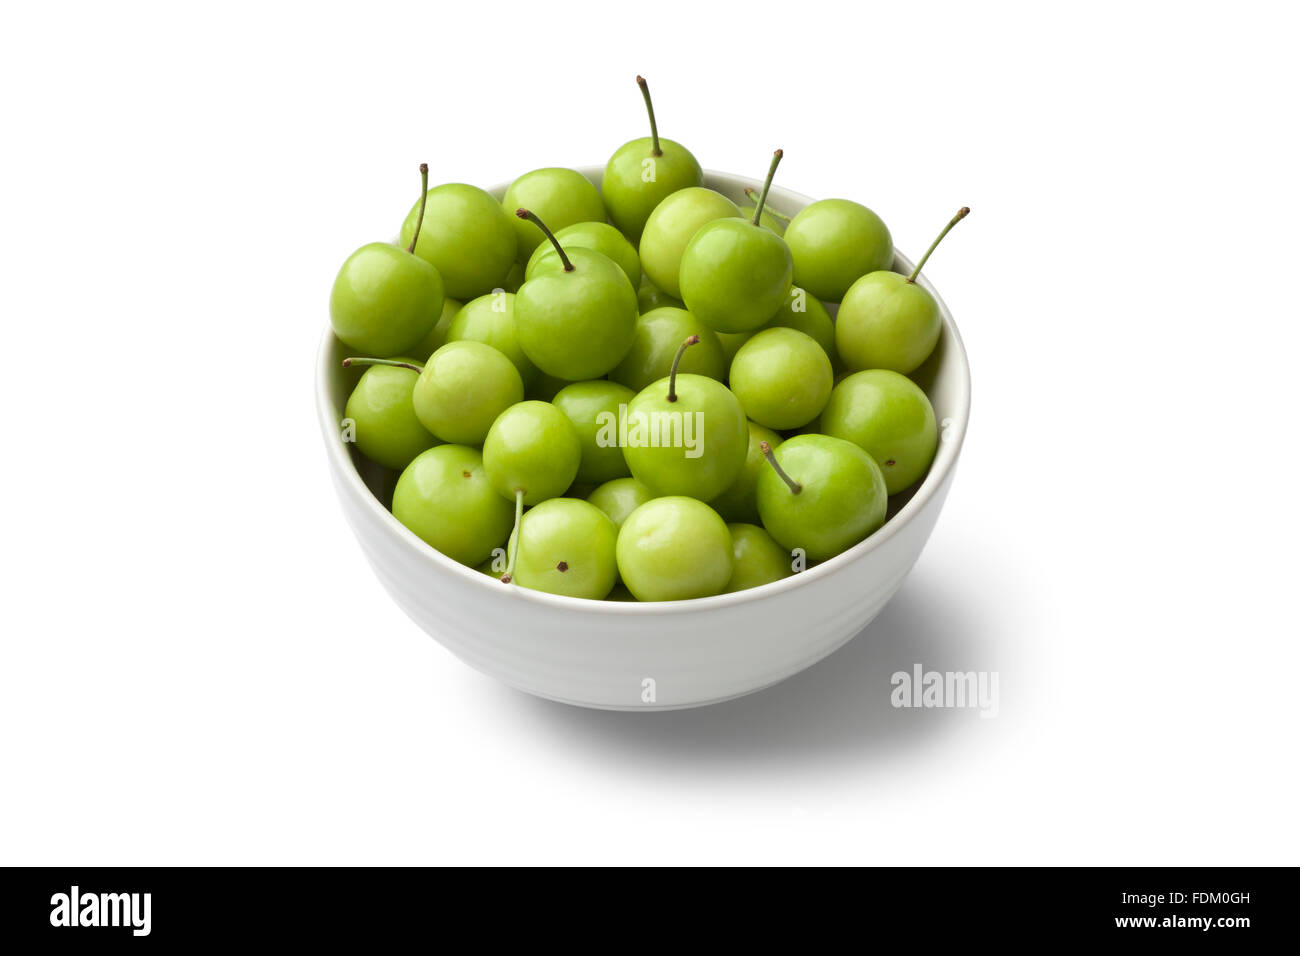 Fresh Can Erik plums in a bowl on white background - Stock Image